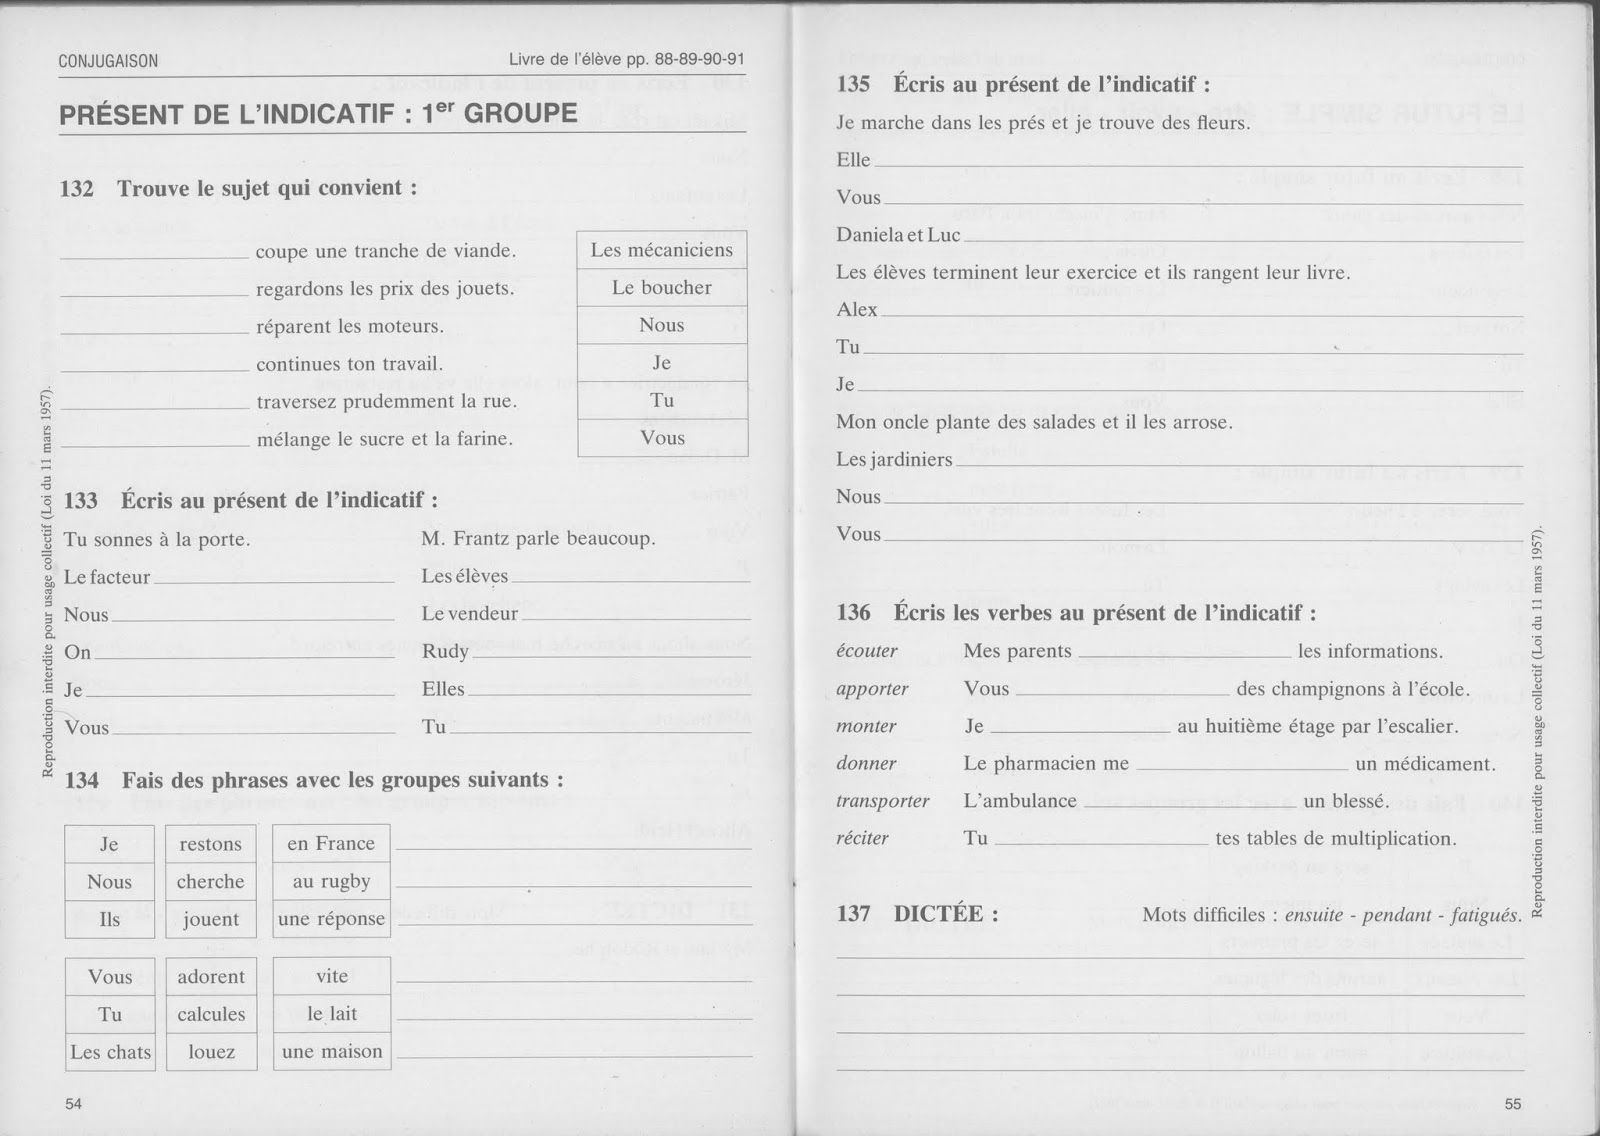 Bled, Exercices D'orthographe Ce1 (1990) | Orthographe Ce1 destiné Exercice Gratuit Ce1